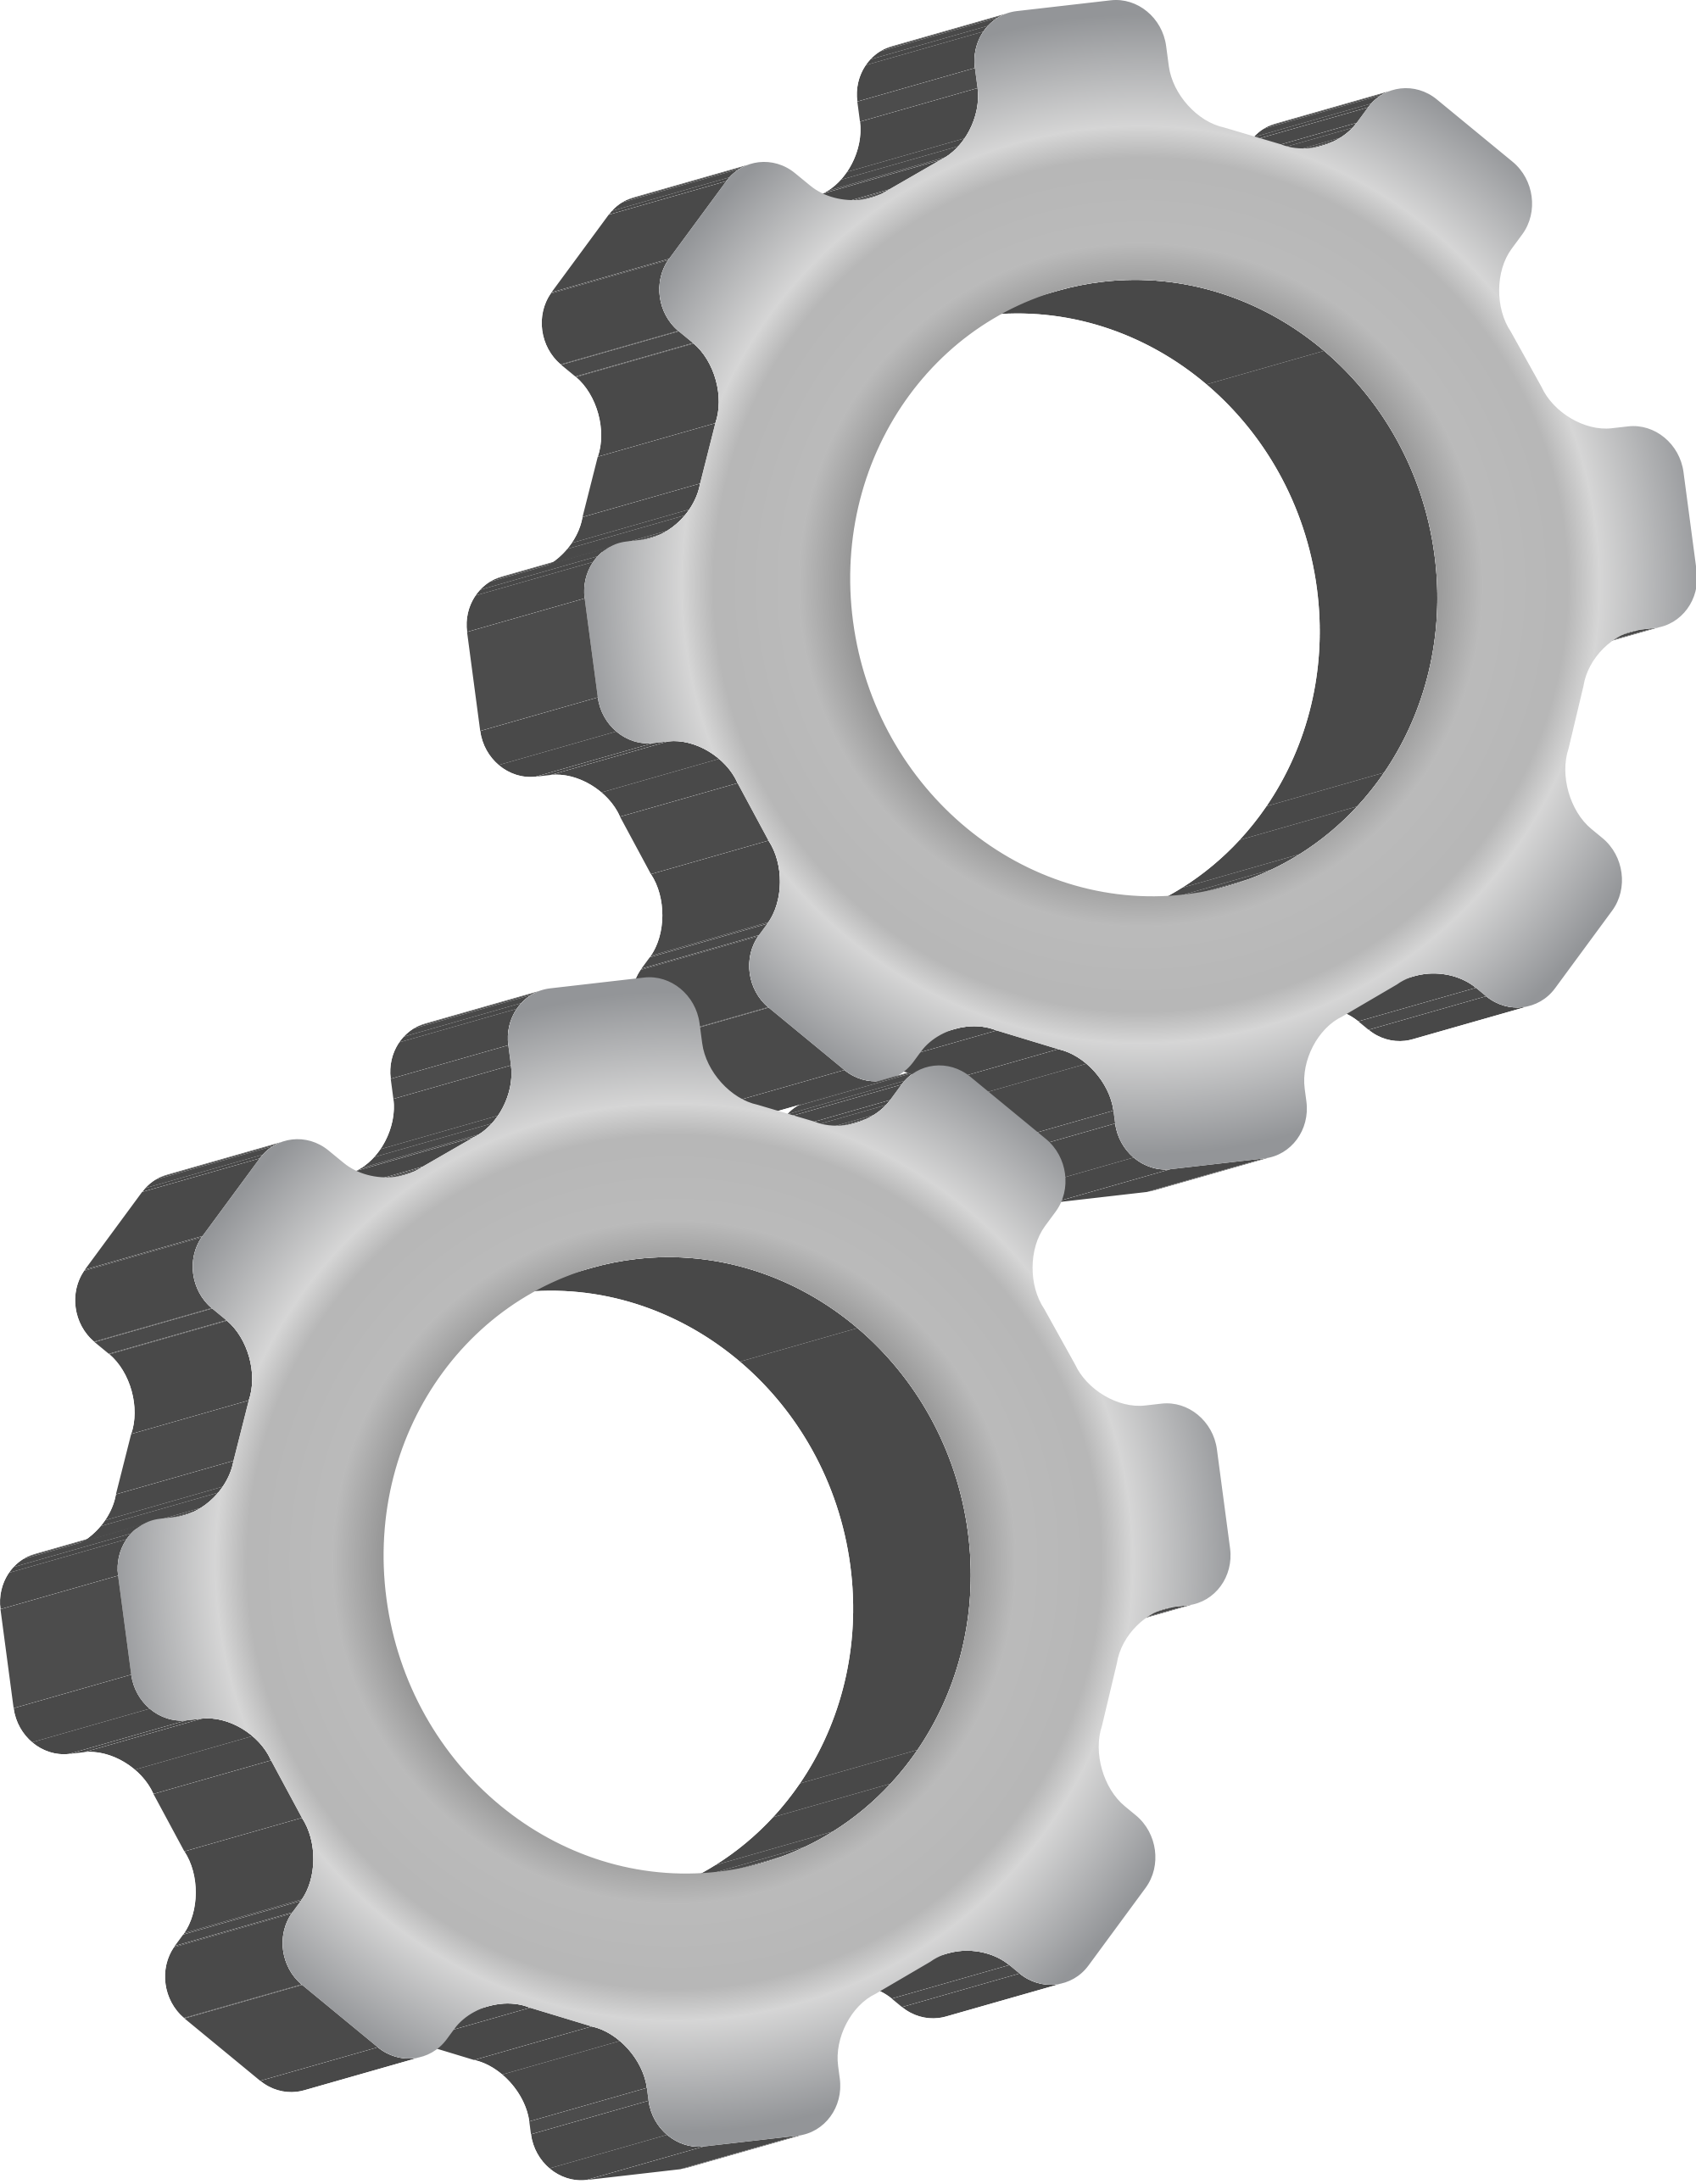 clip transparent library  gears png for. Gear transparent background